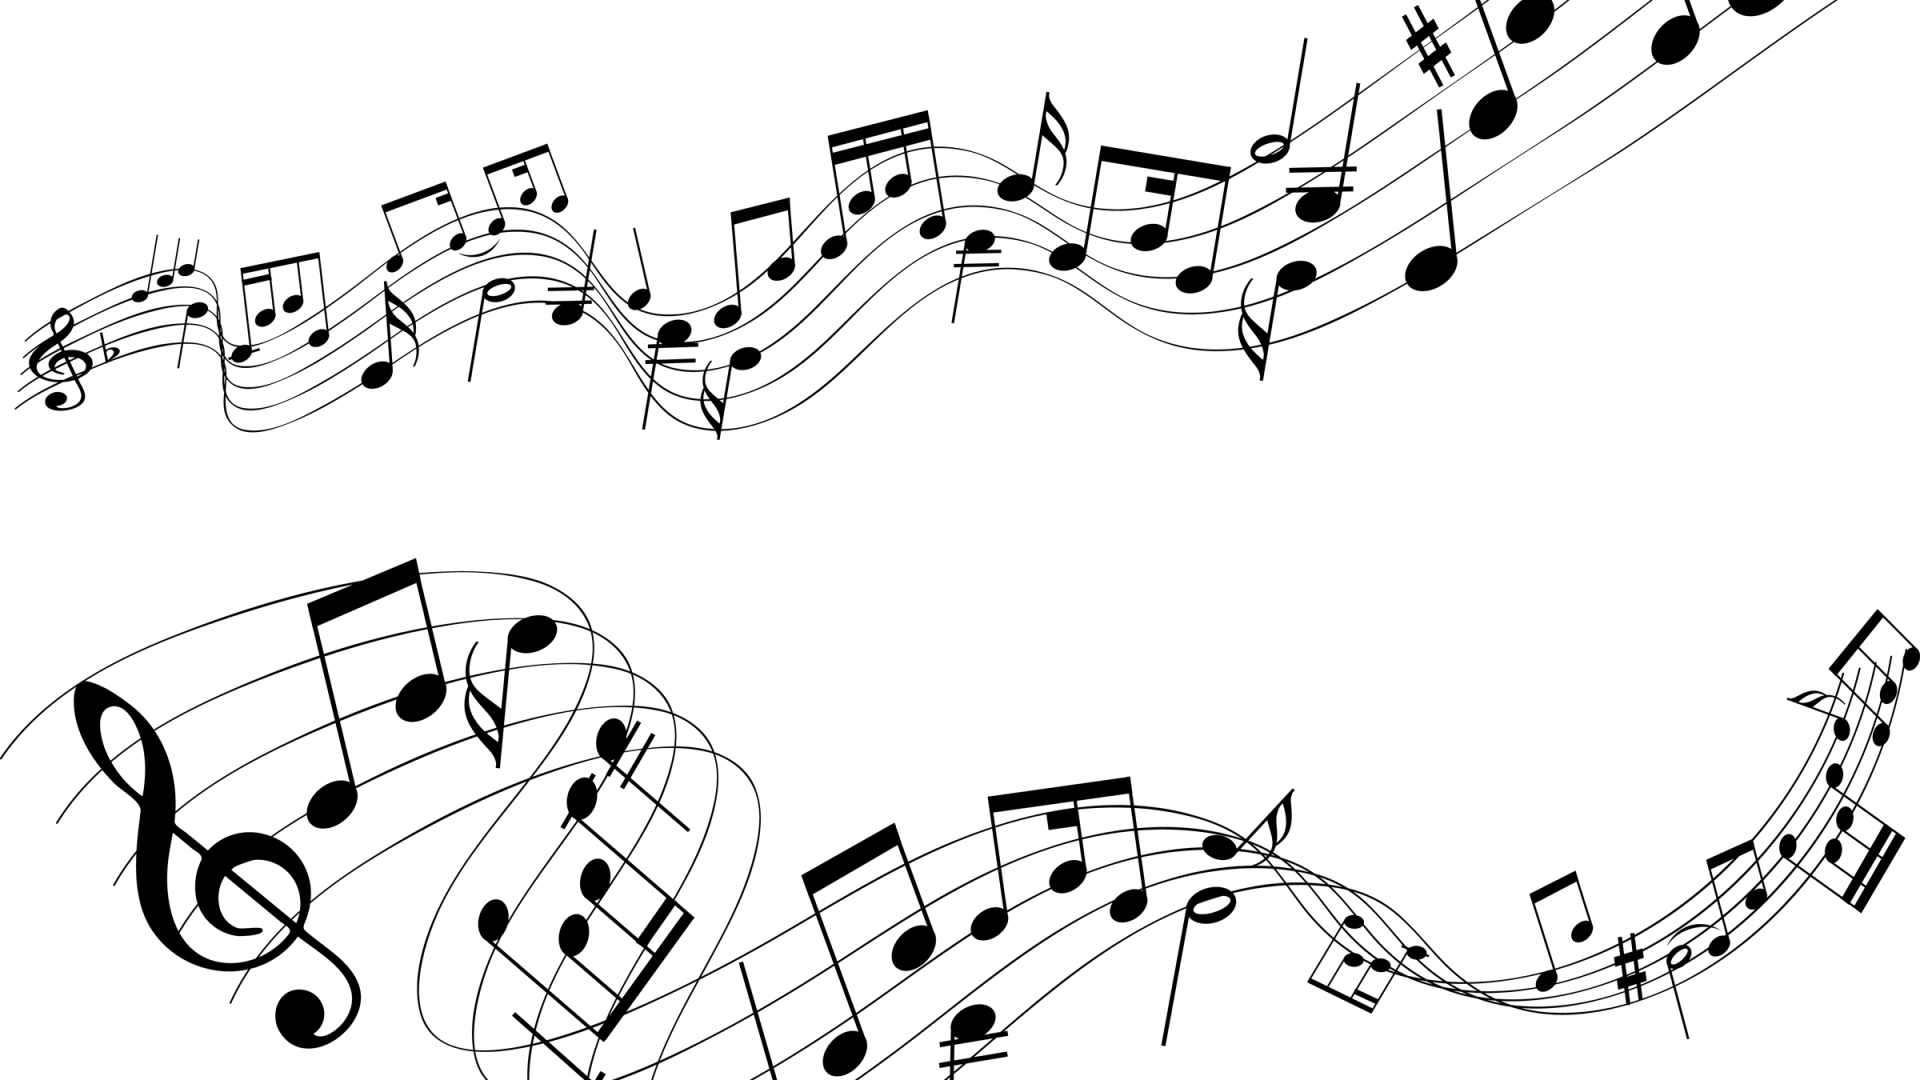 Png Hd Musical Notes Symbols Transparent Hd Musical Notes: Music Notes Wallpapers